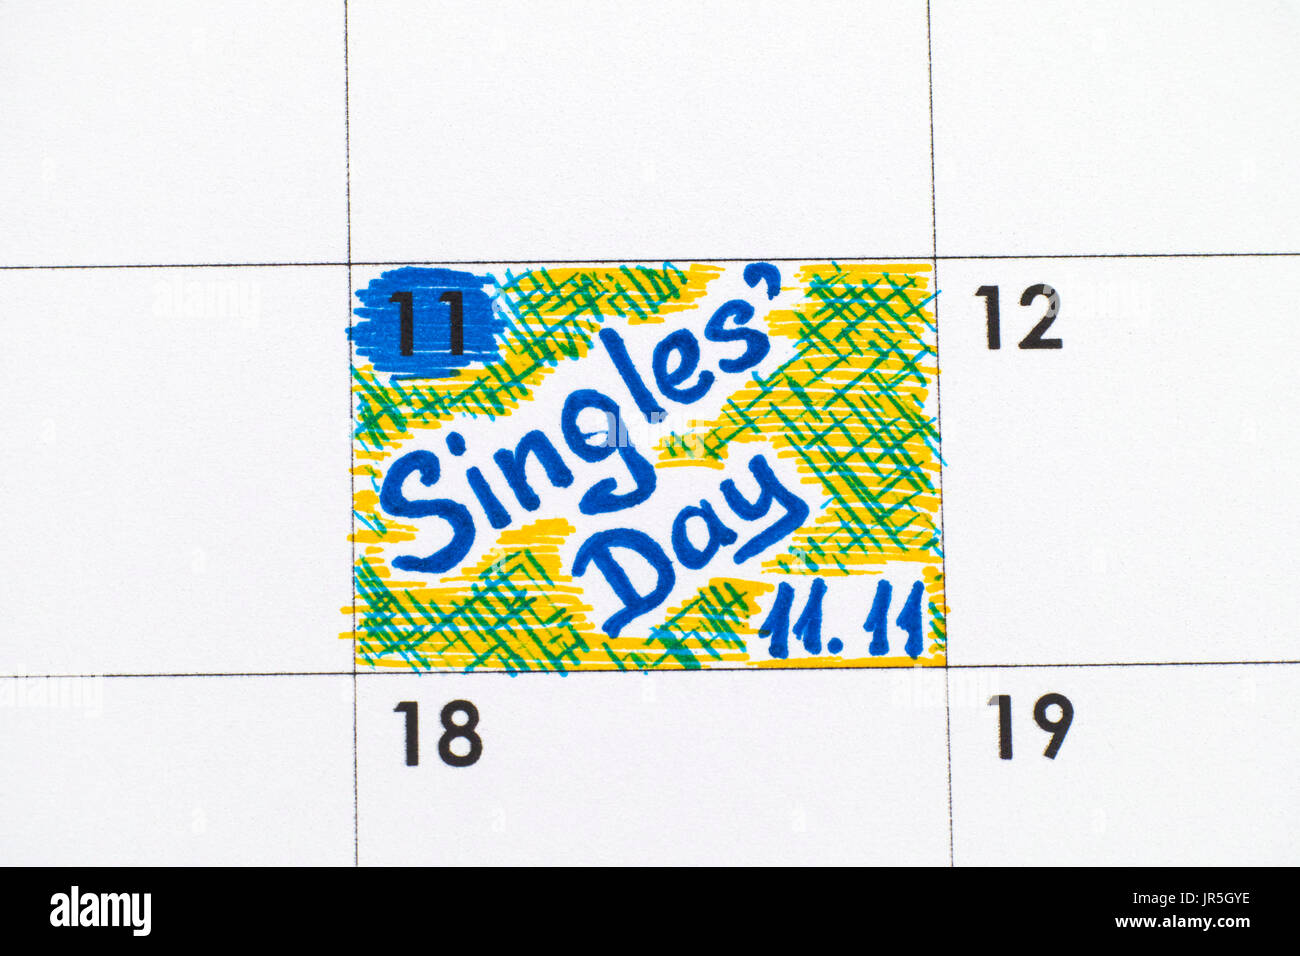 Reminder Singles Day 11.11 in calendar. Close-up. - Stock Image